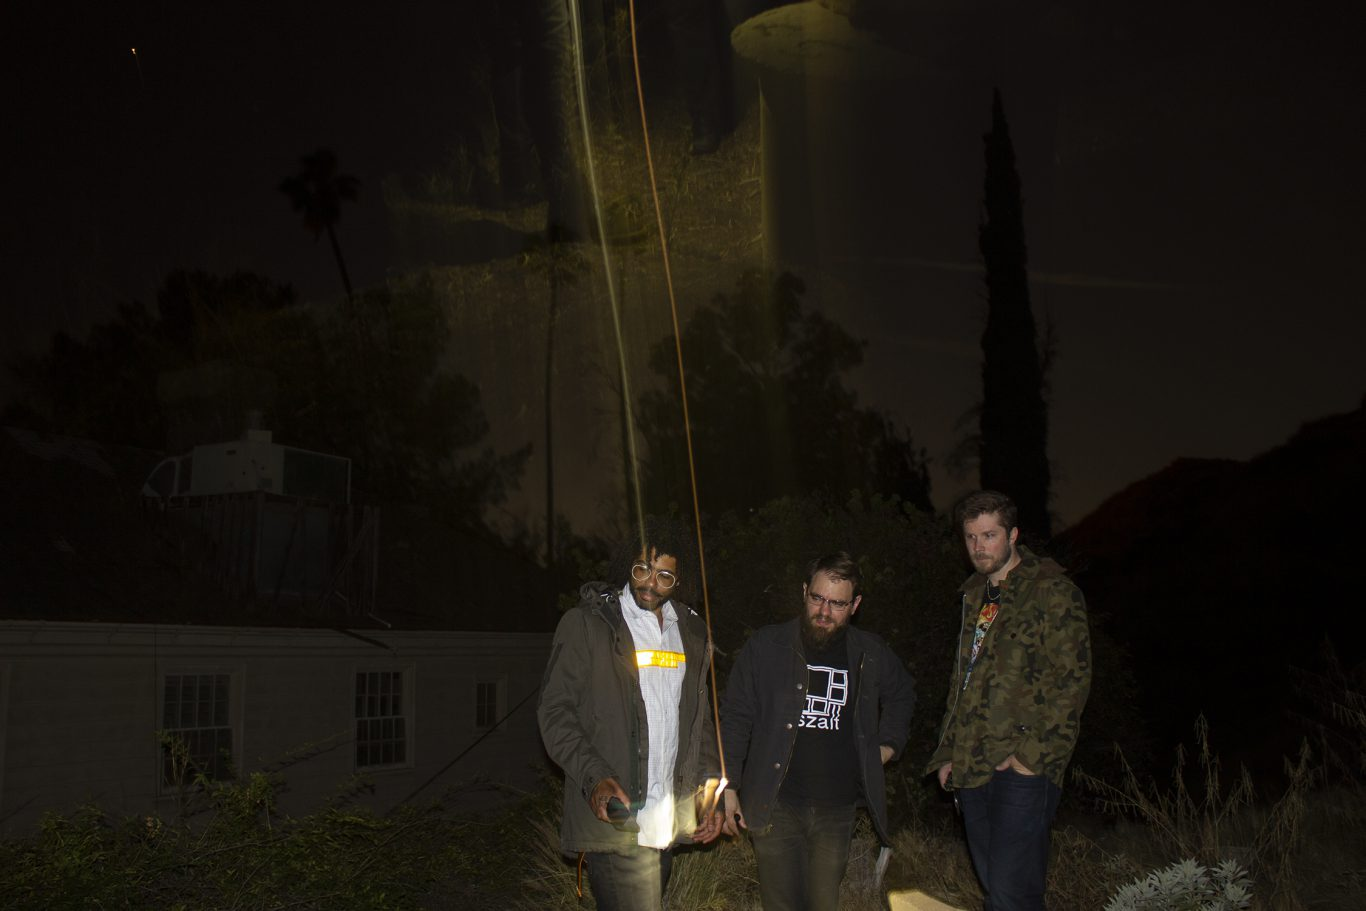 Clipping – Visions of Bodies Being Burned